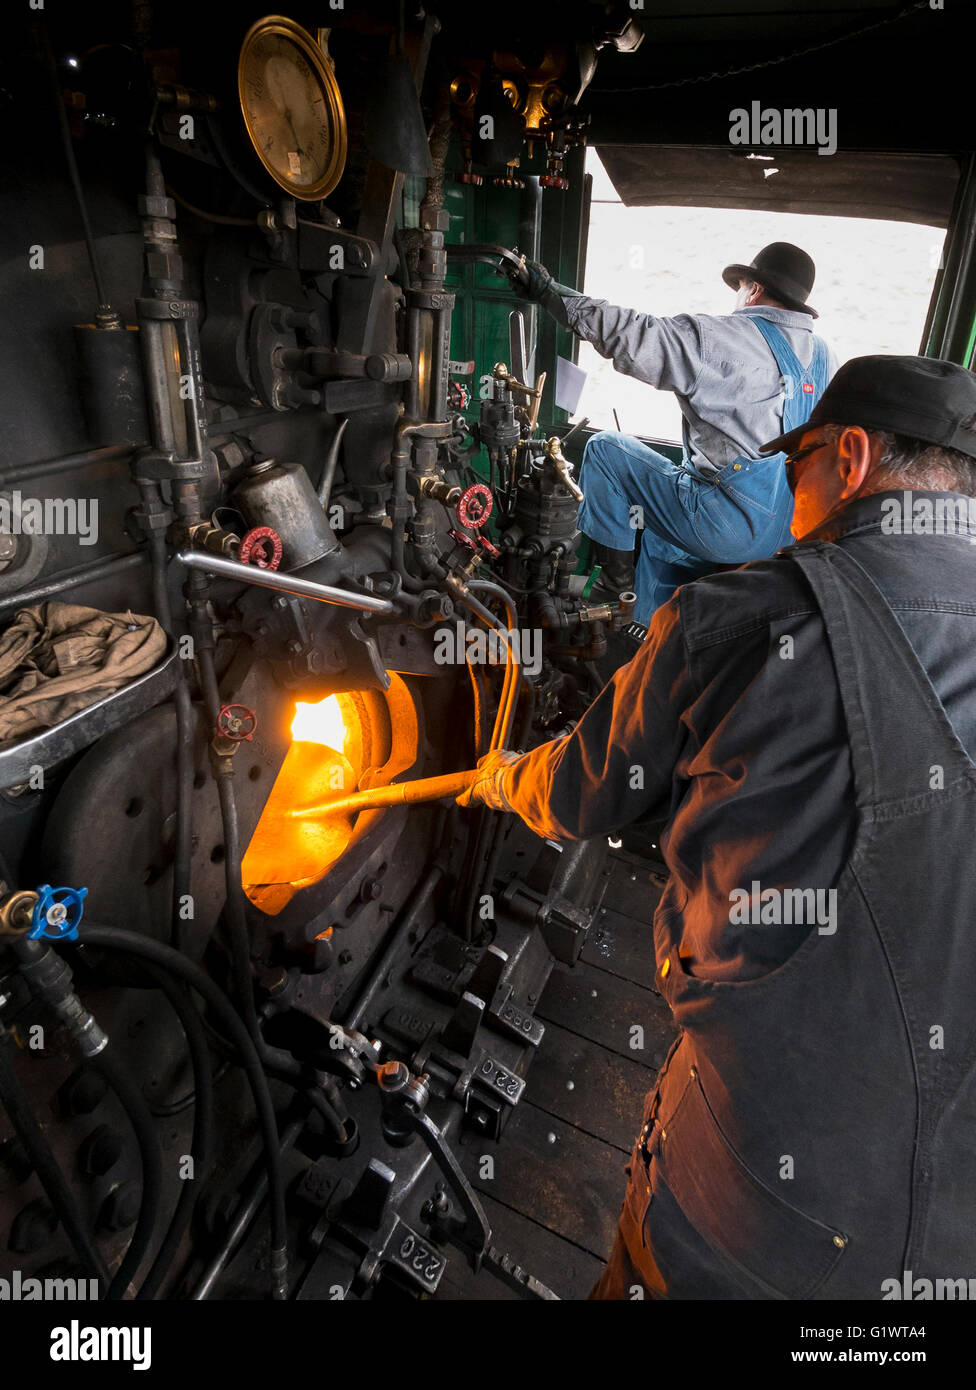 Fireman feeds the fire of locomotive 487, Cumbres & Toltec Scenic Railroad be - Stock Image